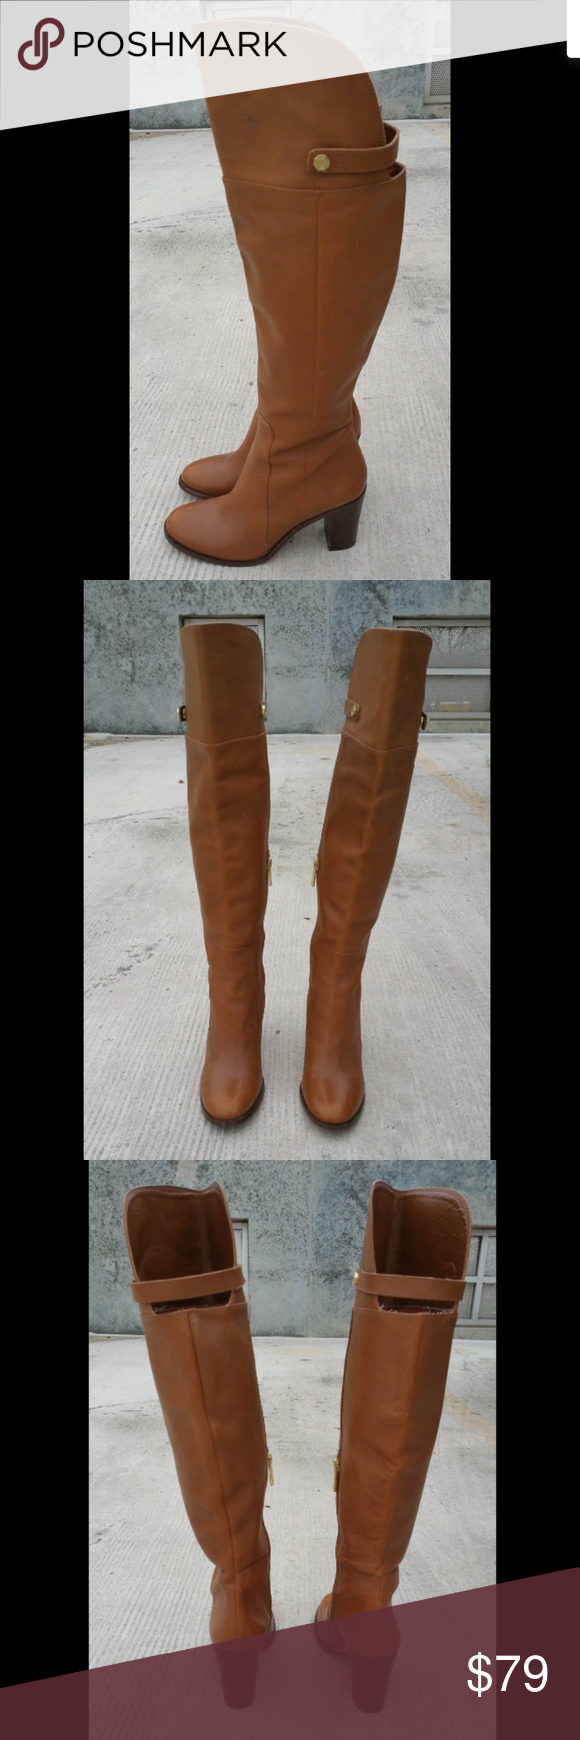 8a750b4fa7e Louise Et Cie Over The Knee Boots Sexy Block Heels Louise Et Cie Over The  Knee